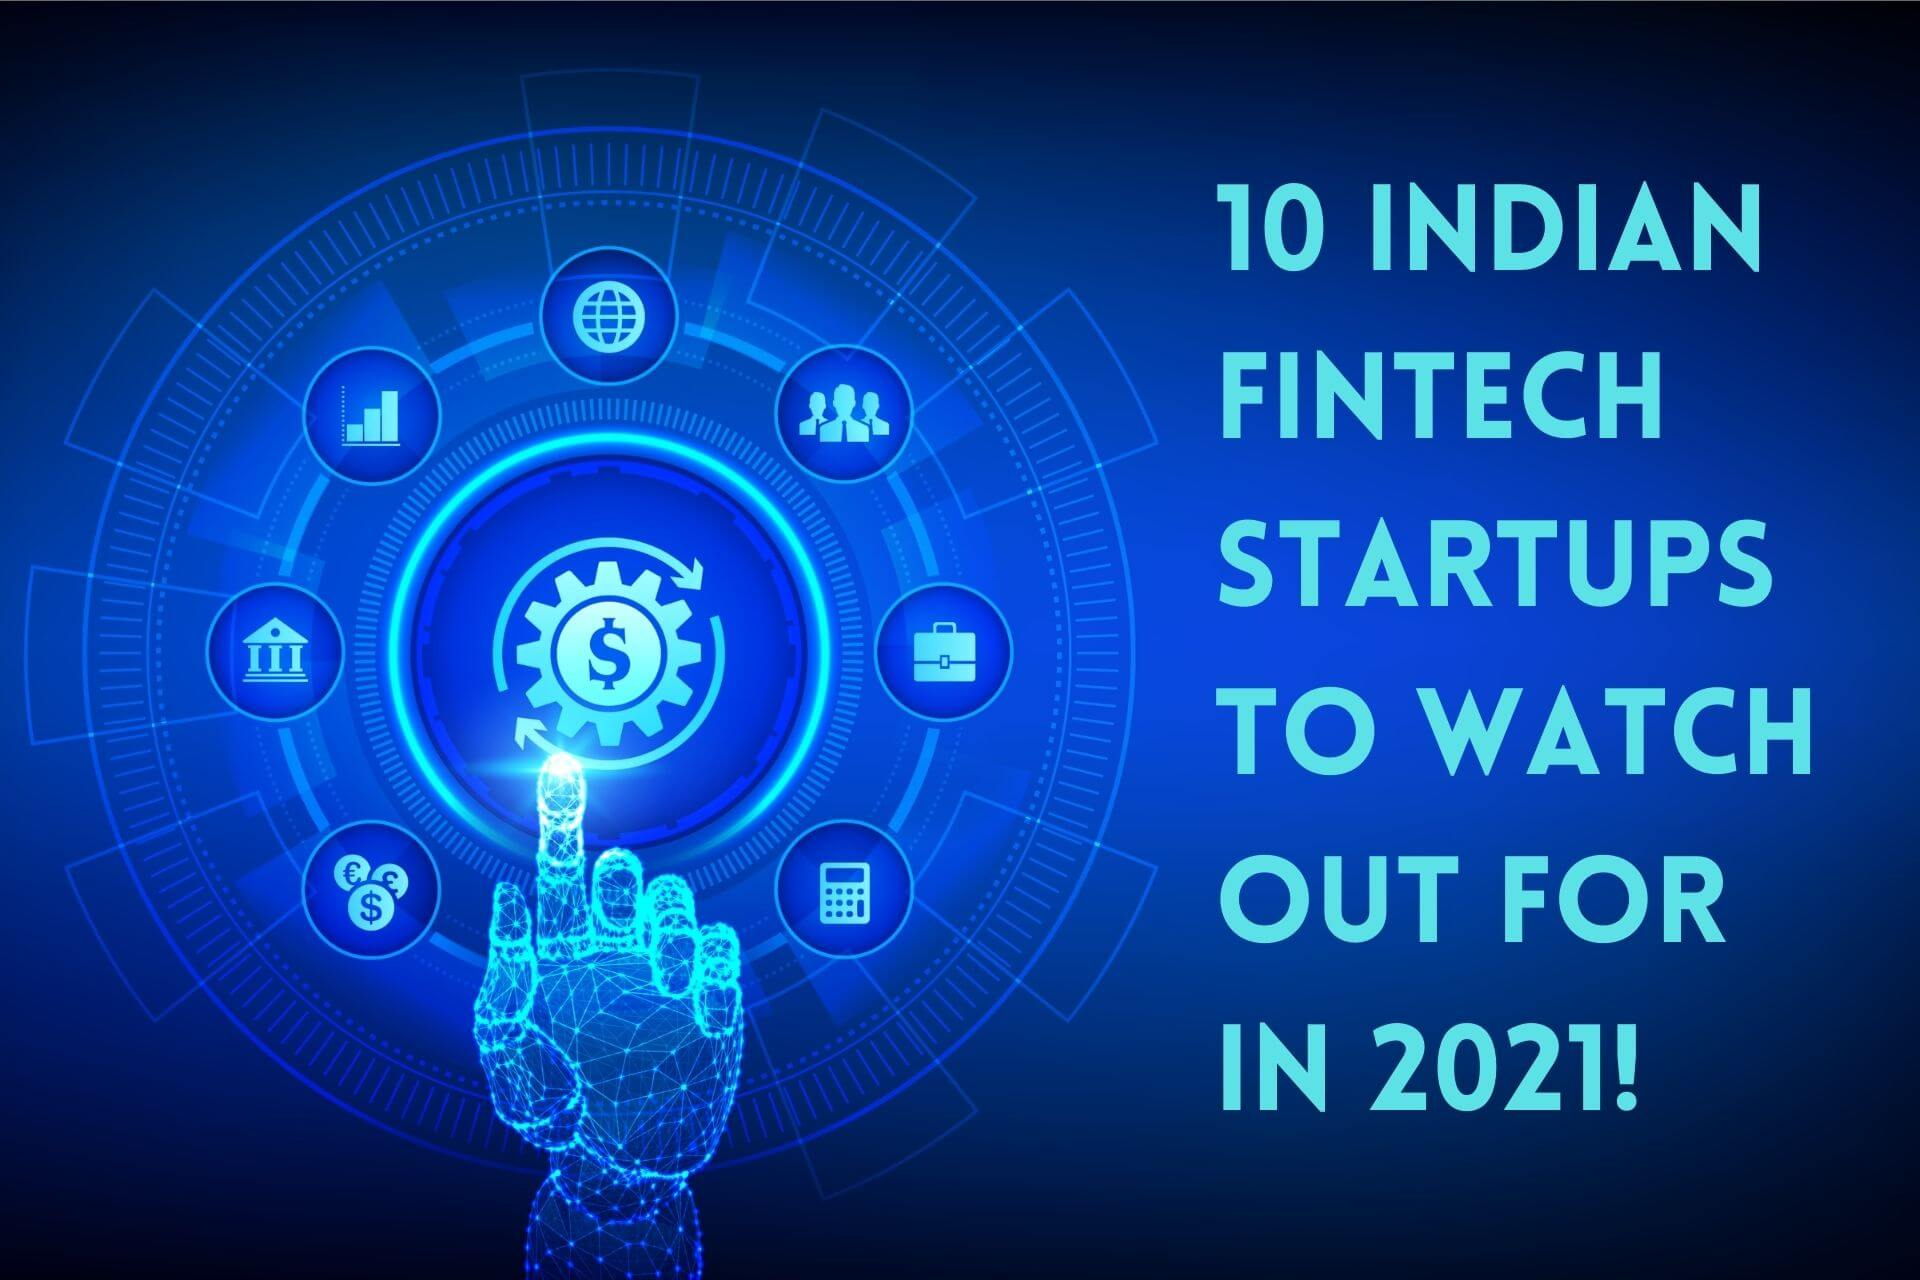 Fintech Watchlist: 10 Indian Fintech Startups to Watch Out For in 2021!